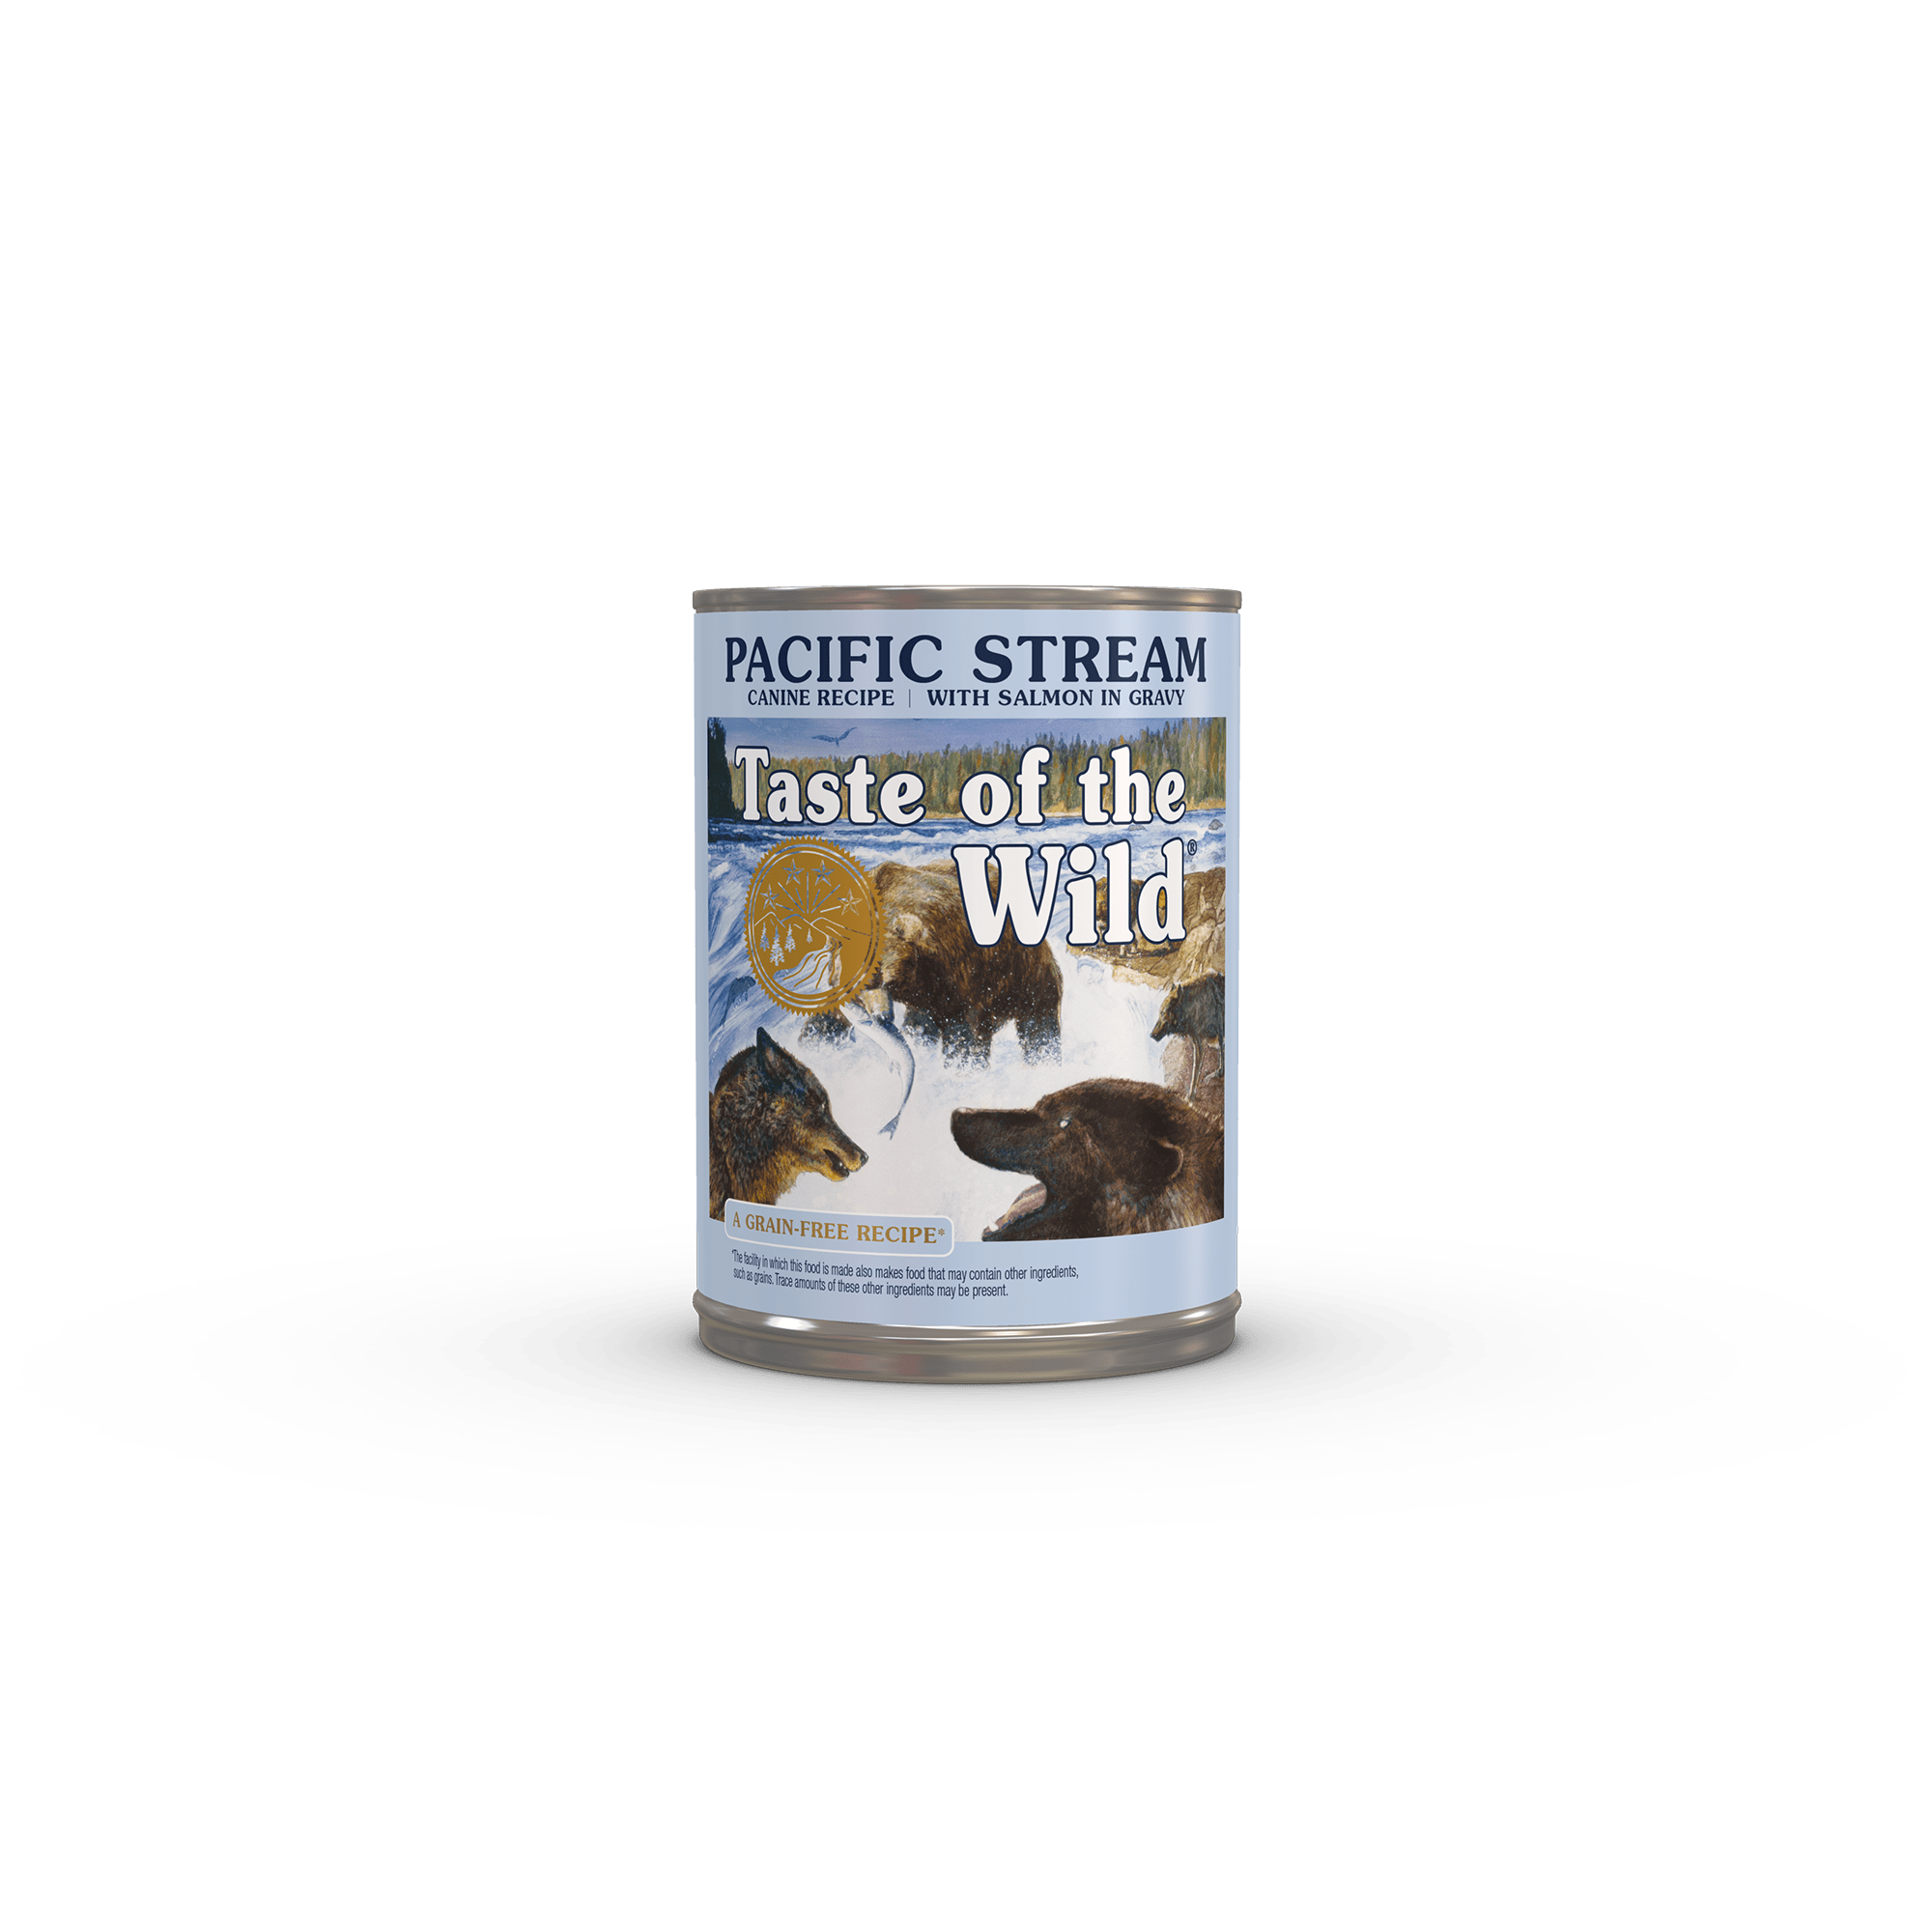 Pacific Stream Canine Formula with Salmon in Gravy Image